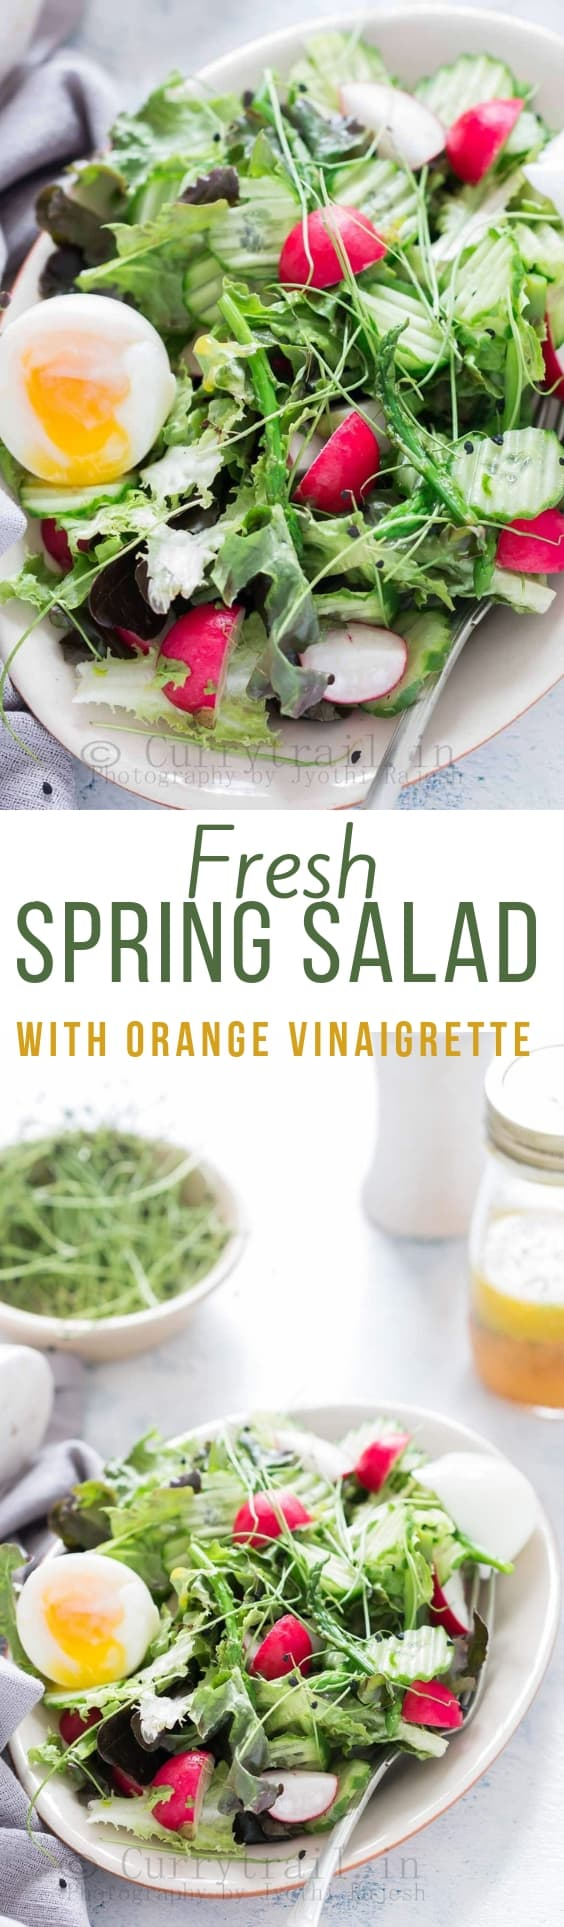 fresh spring salad made from fresh spring mix of tender greens with orange vinaigrette with text overlay